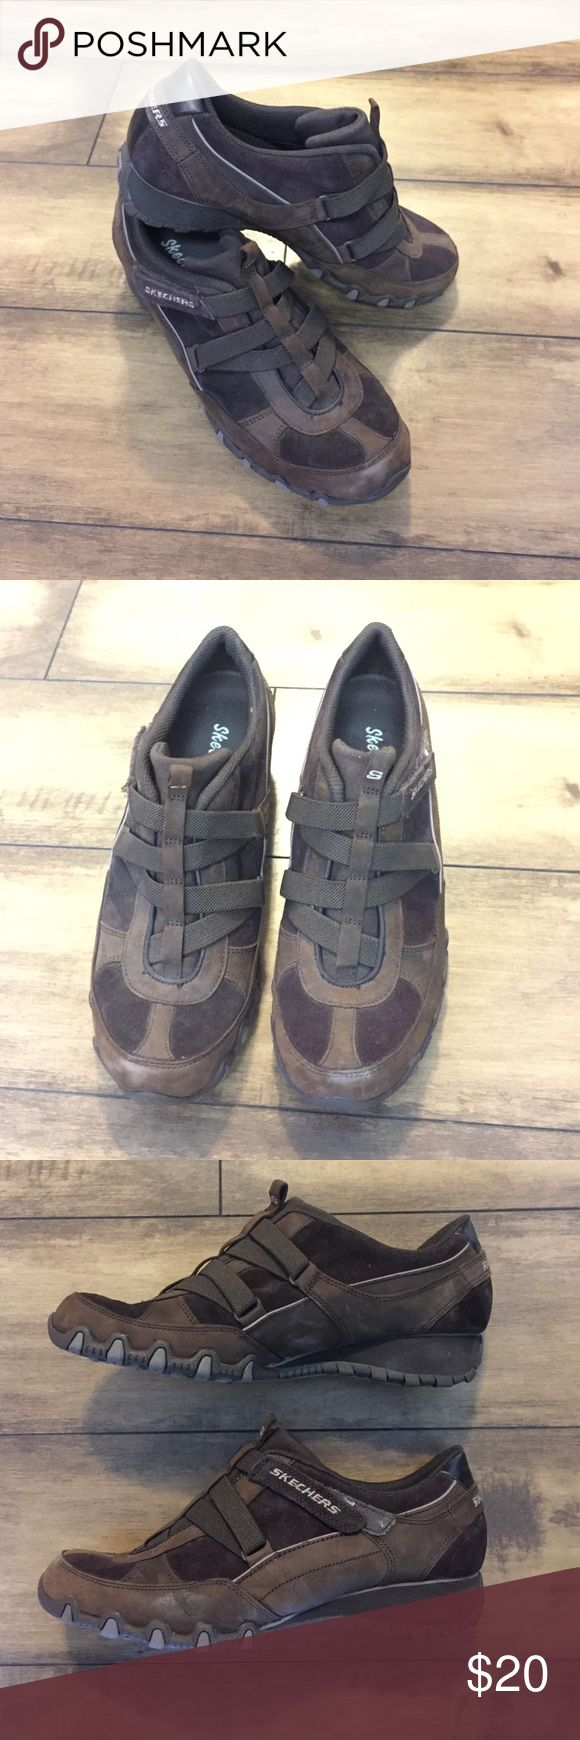 Skechers slip on shoes with Velcro closure Like new, Sketchers slip on shoe with Velcro closure. Small heel and good tread. Brown leather with a darker brown suede. Look like a Diesel shoe design. Size 8. Skechers Shoes Sneakers